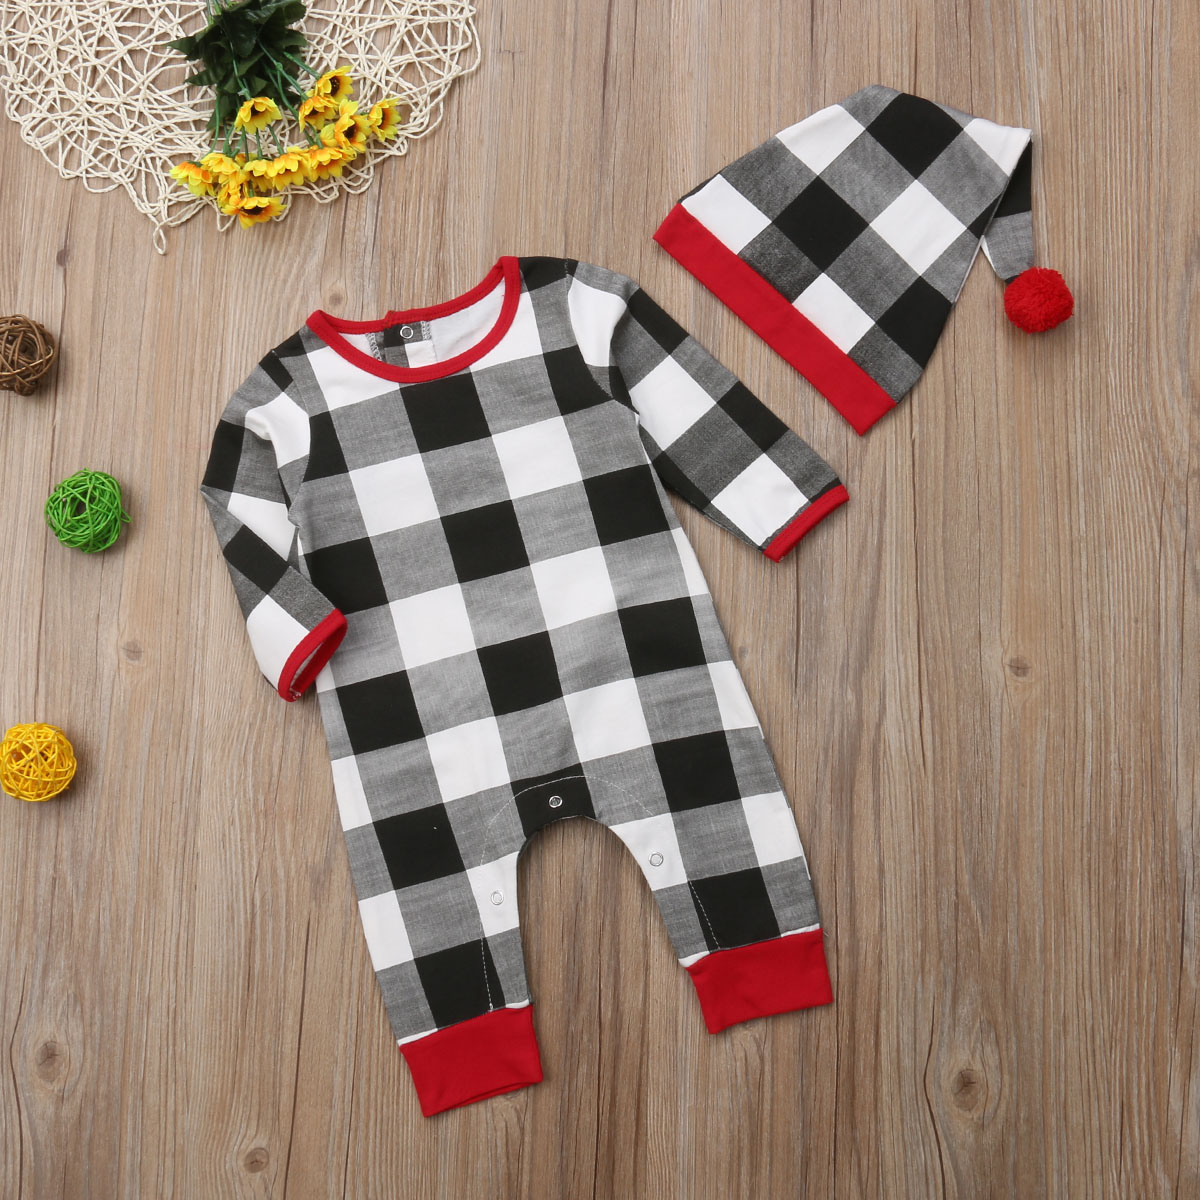 684f8cc259a 2019 Pudcoco Xmas Baby Rompers Newborn Baby Boy Girl Check Plaid ...